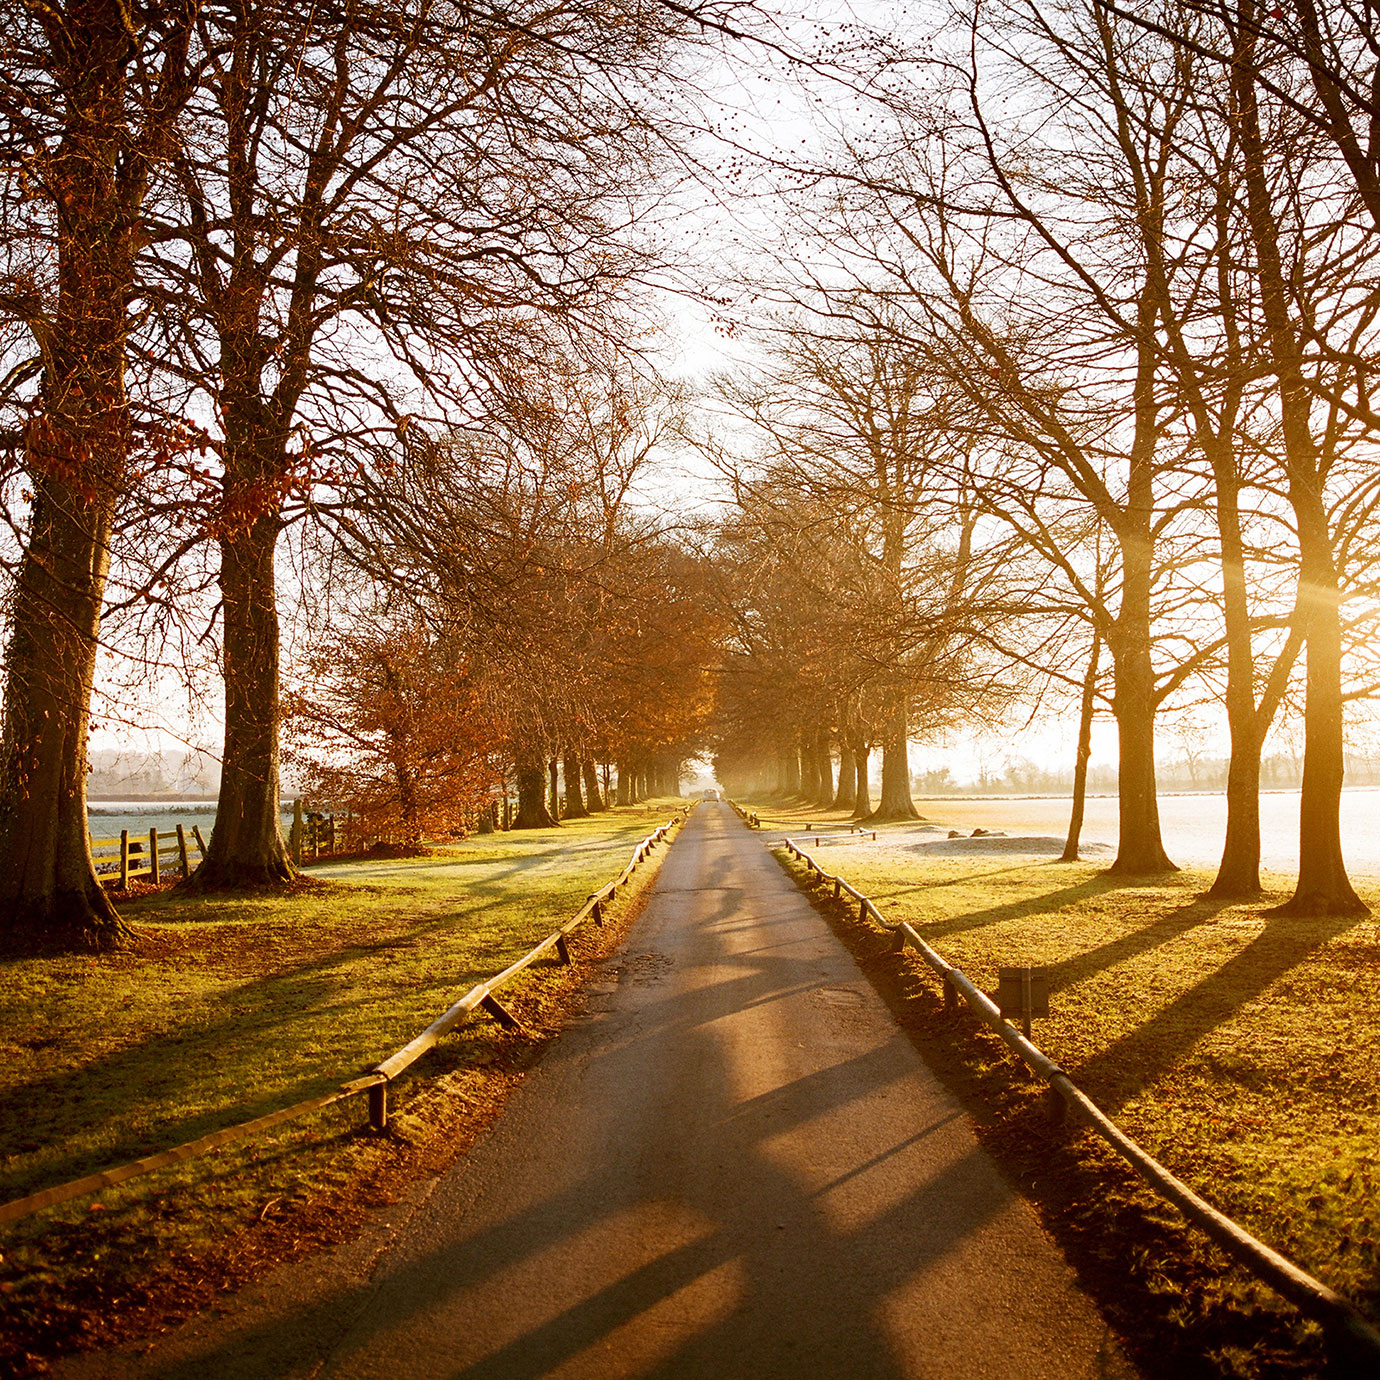 A country drive lined by trees at sunrise.